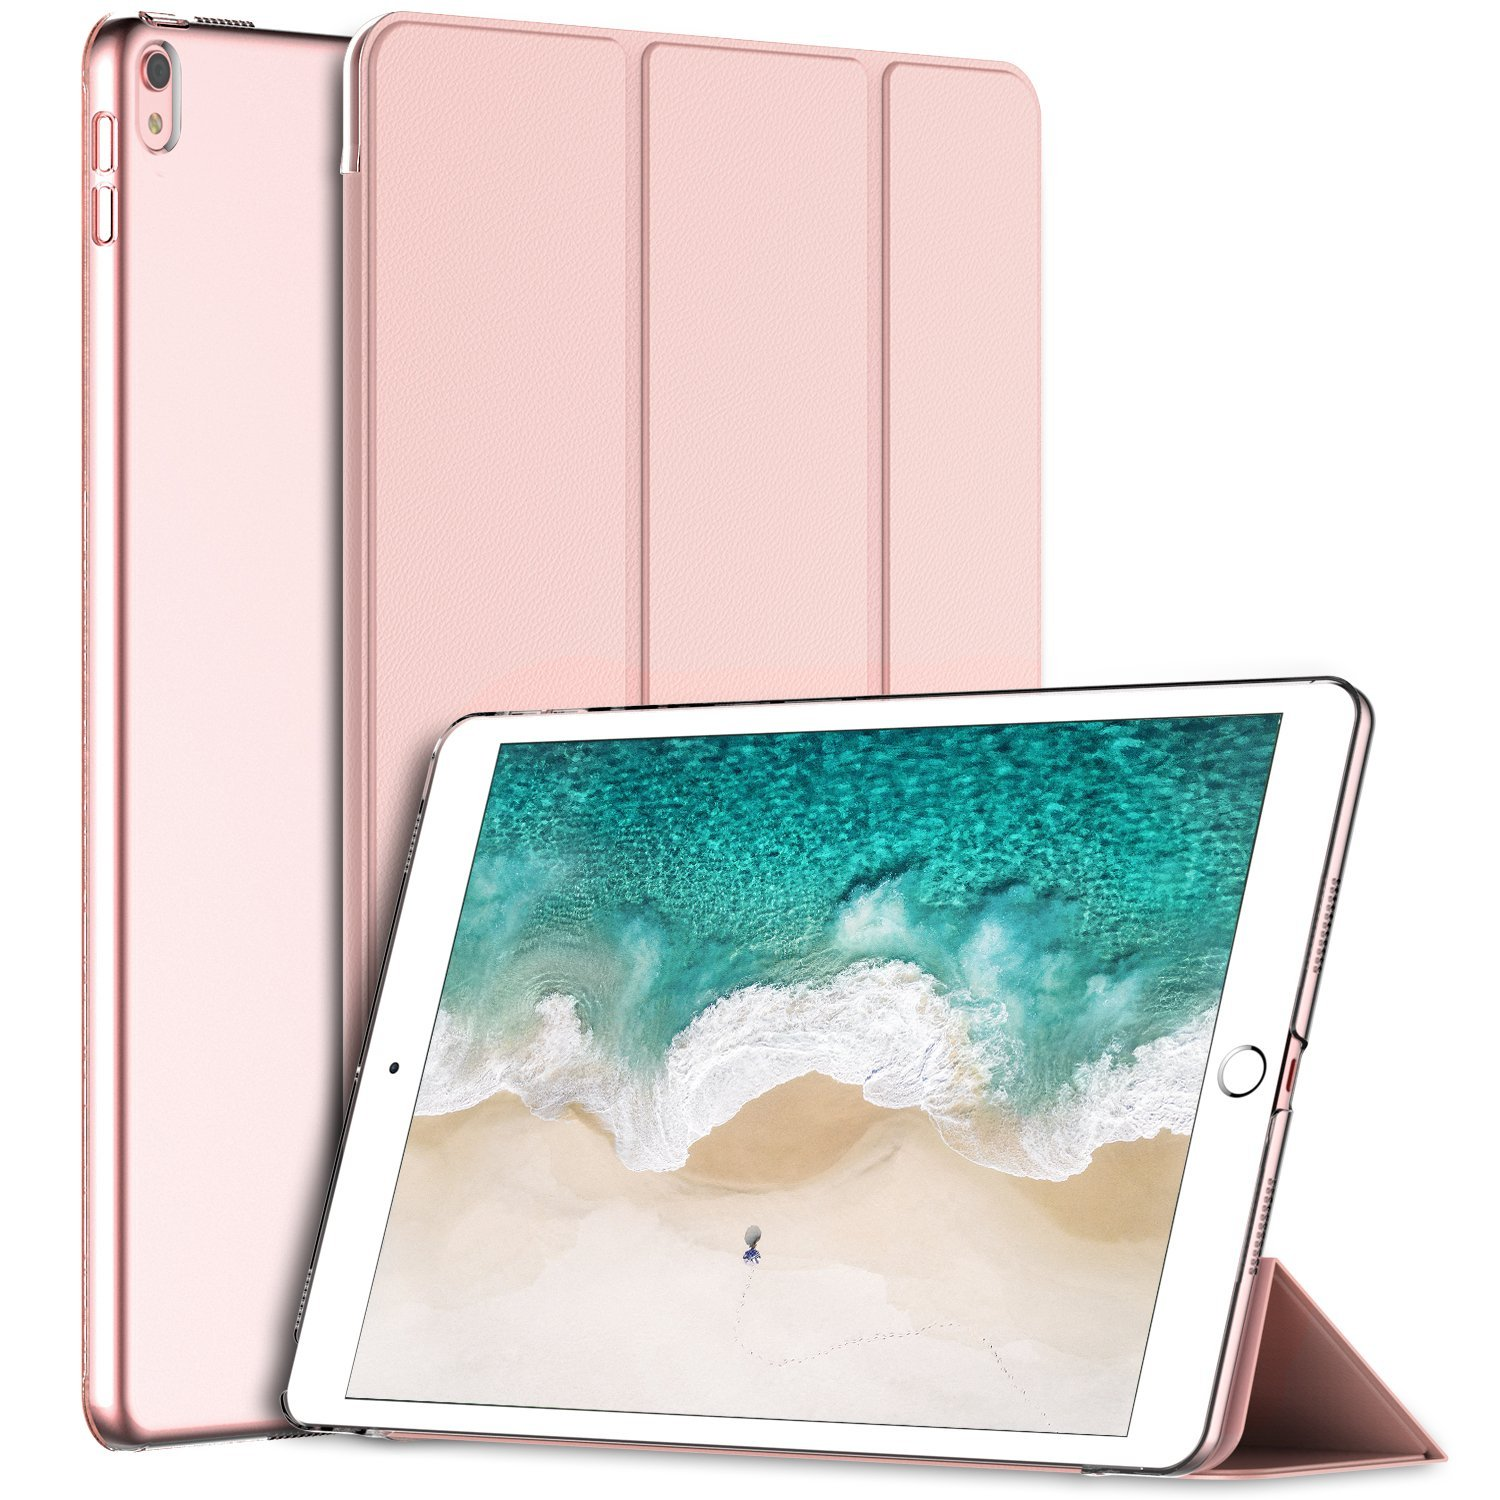 iPad Pro 10.5 Case, SuprJETech Case Cover for the New Apple iPad Pro 10.5 Inch 2017 Model with Auto Sleep/Wake (Rose Gold)